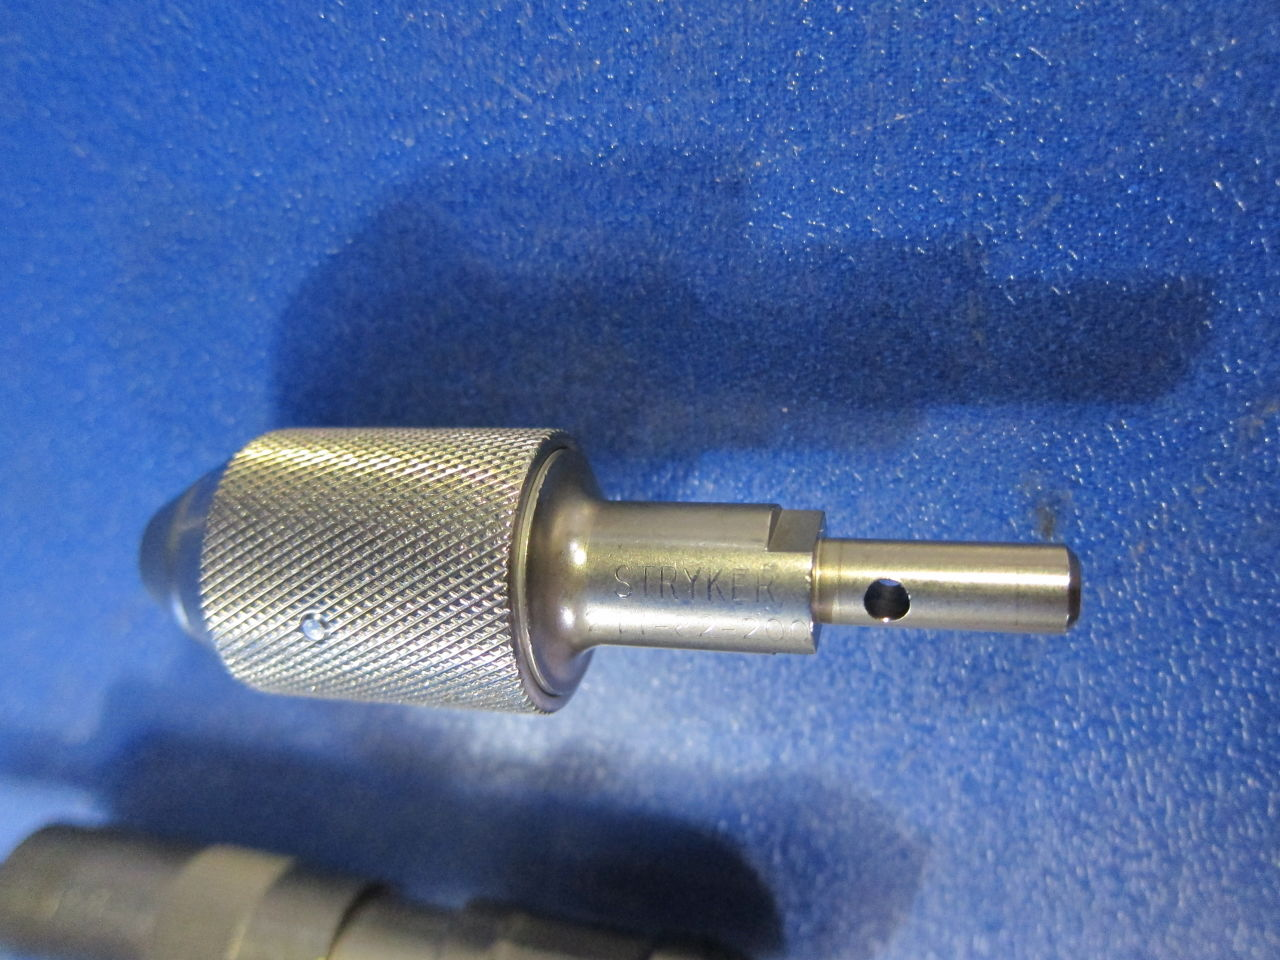 STRYKER Various Drill and Chuck Attachments - Lot of 3